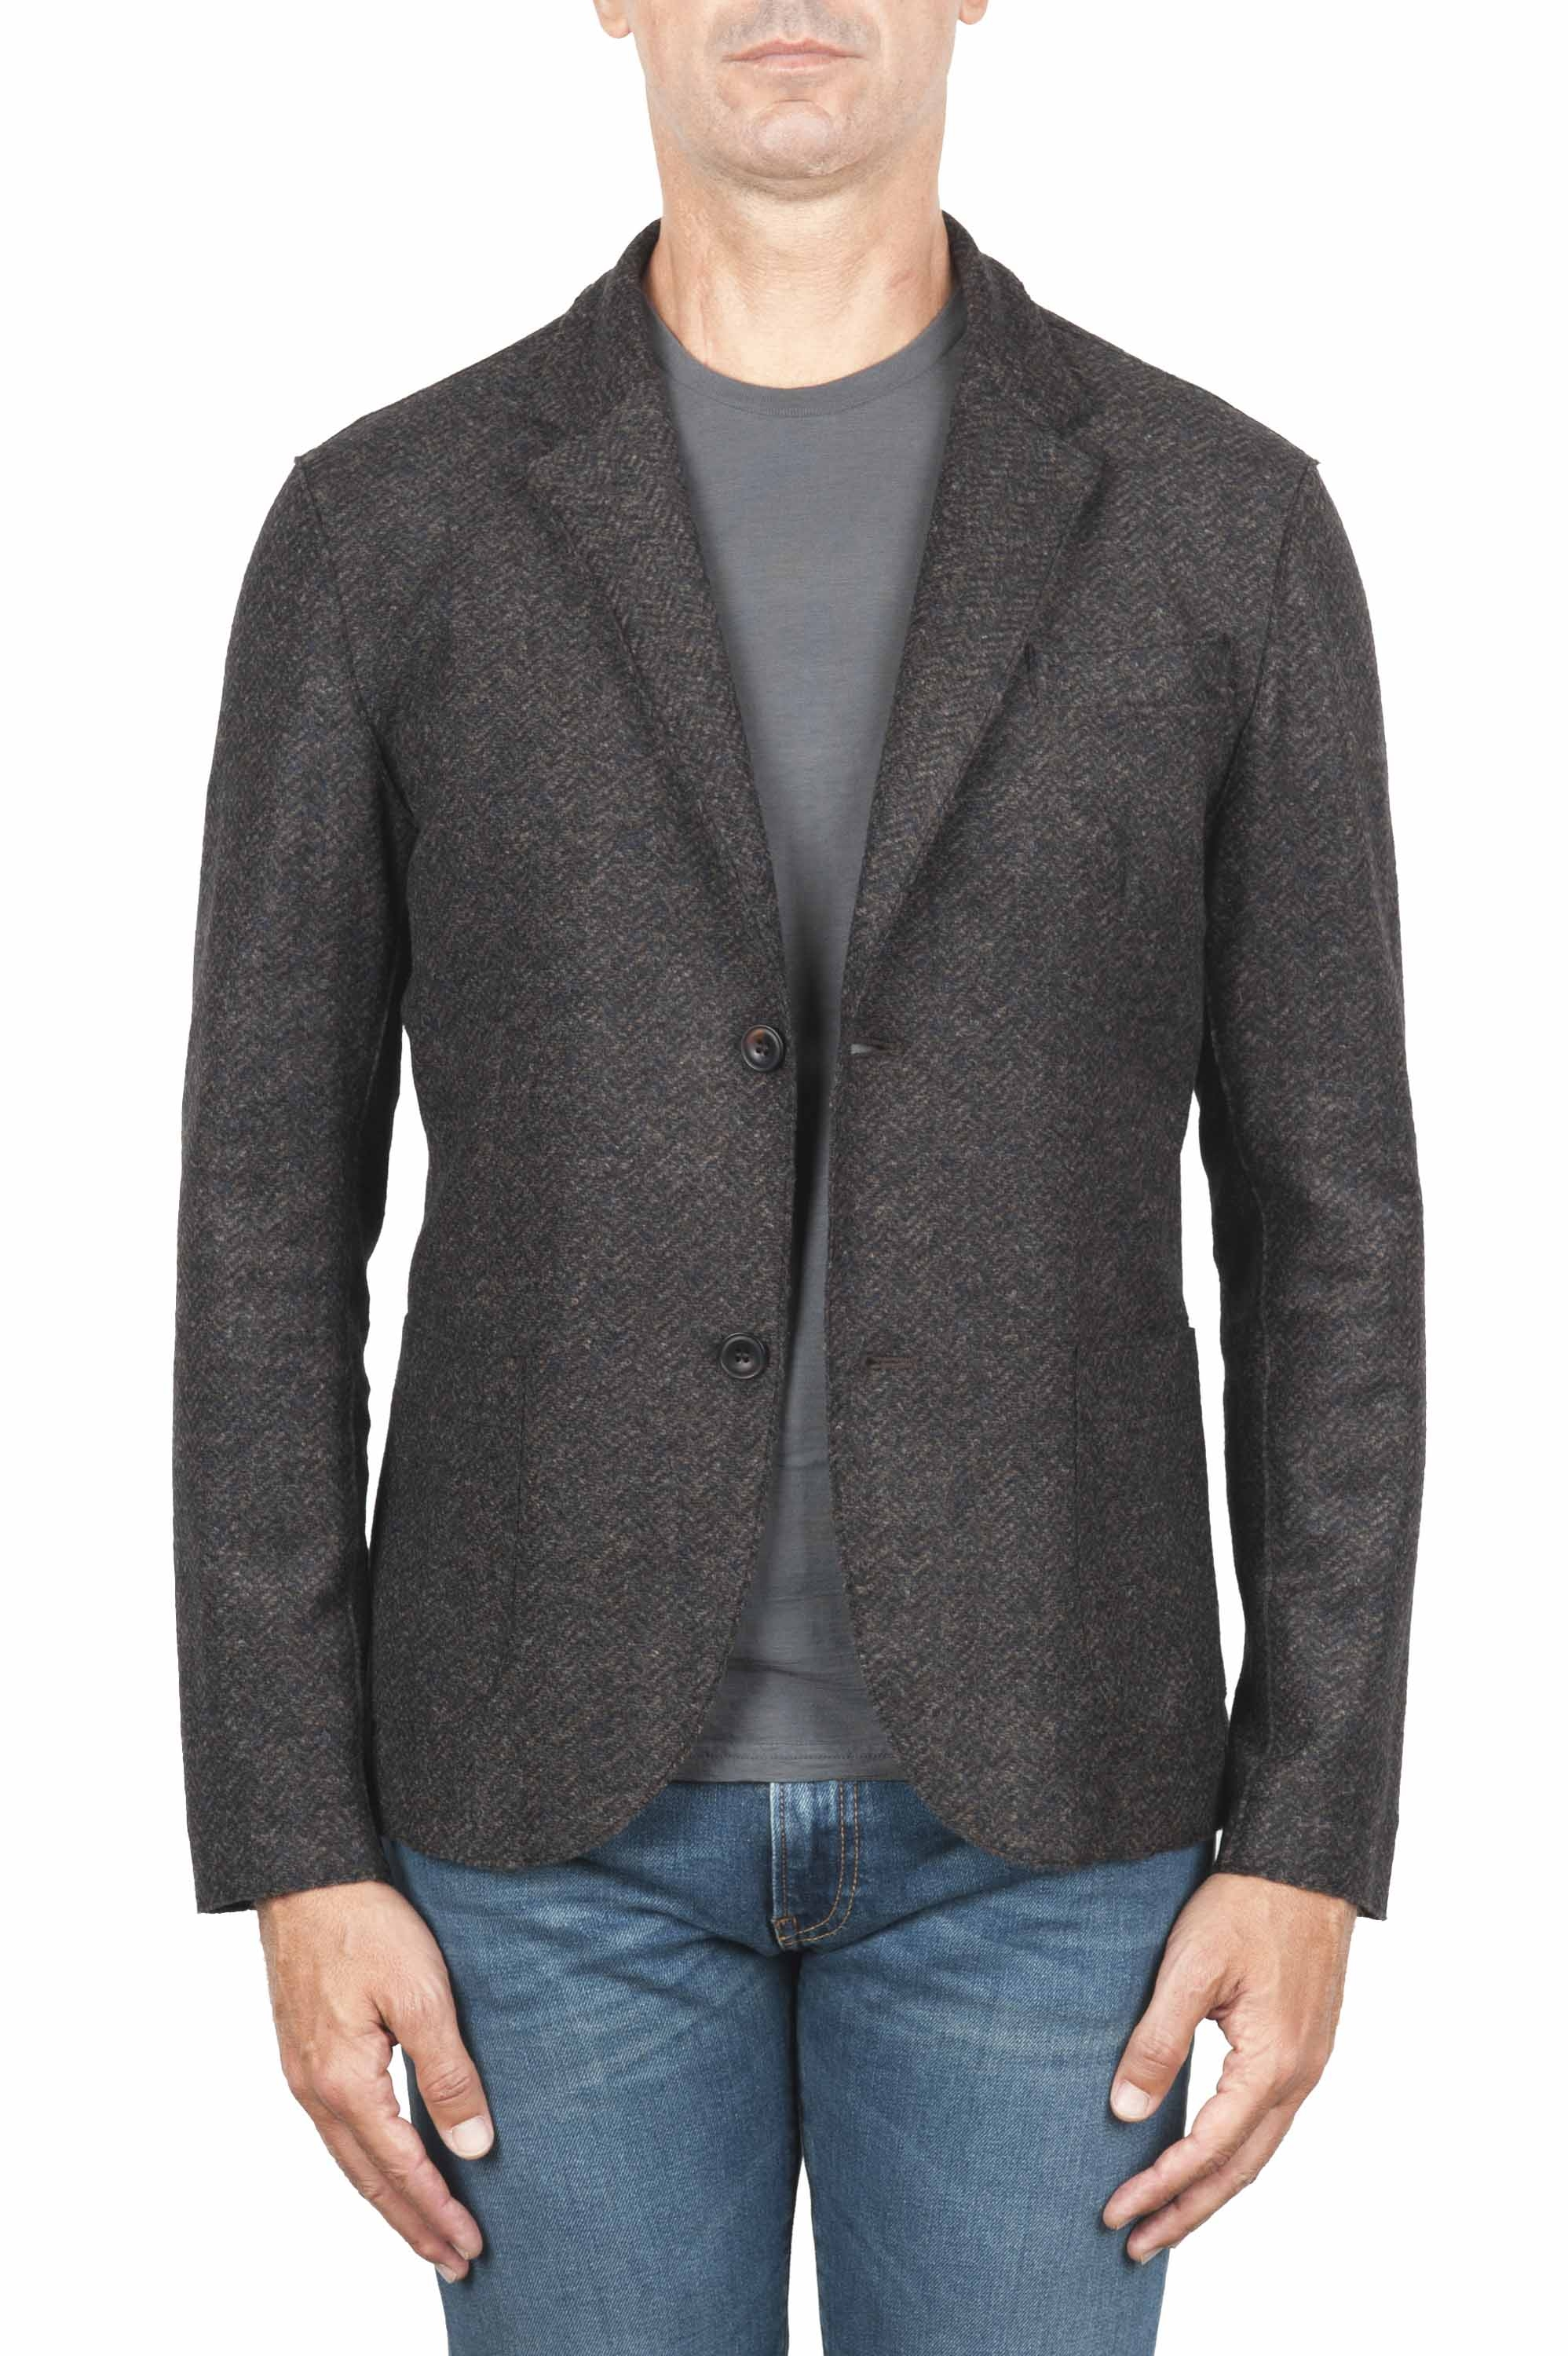 SBU 01442_19AW Brown wool blend sport jacket unconstructed and unlined 01